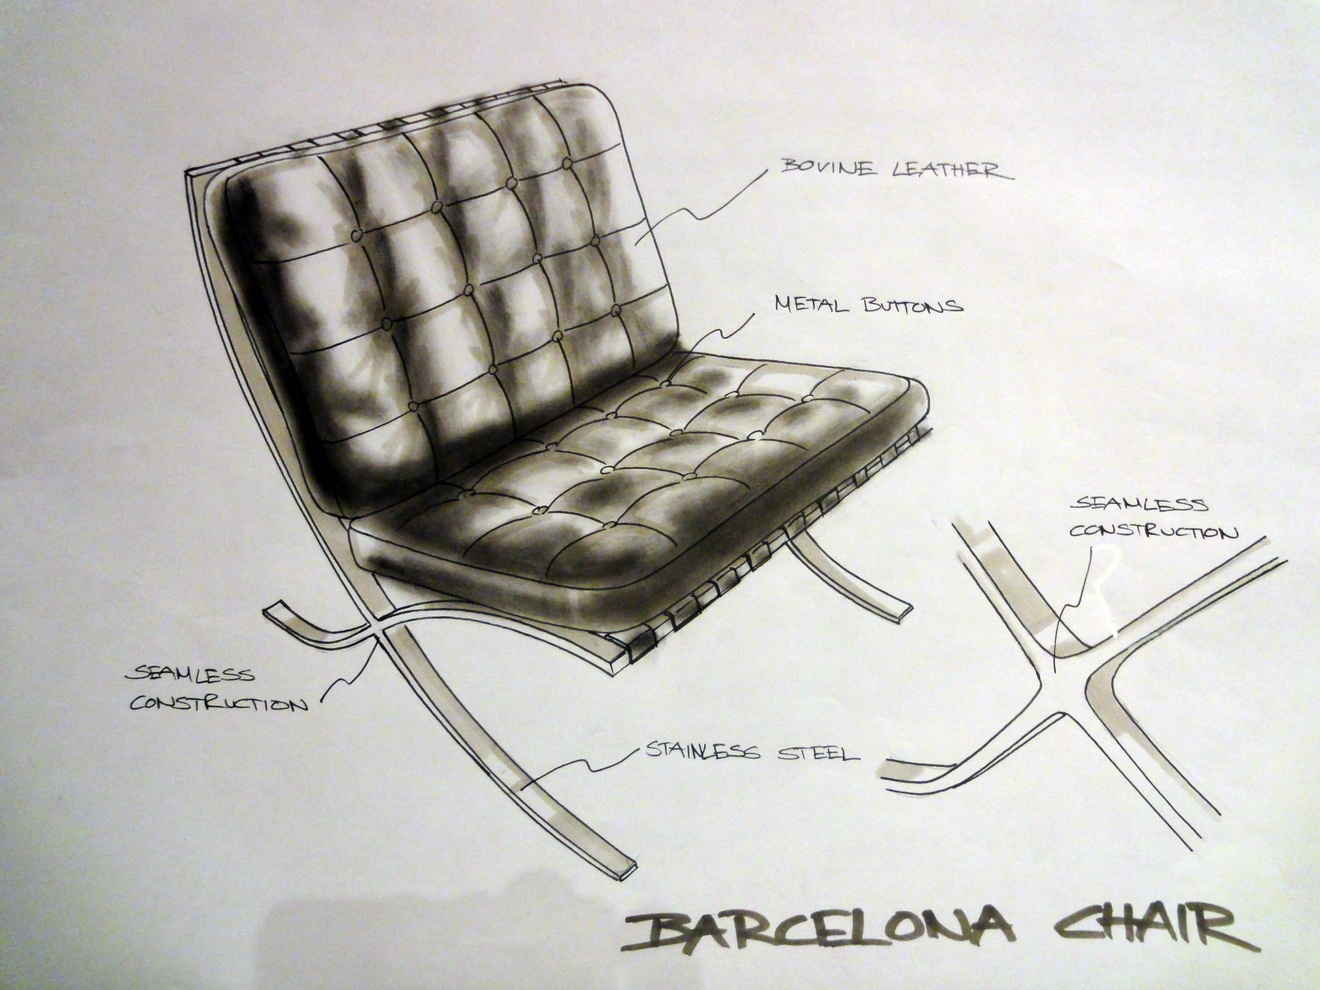 Furniture design sketches for Furniture design sketches